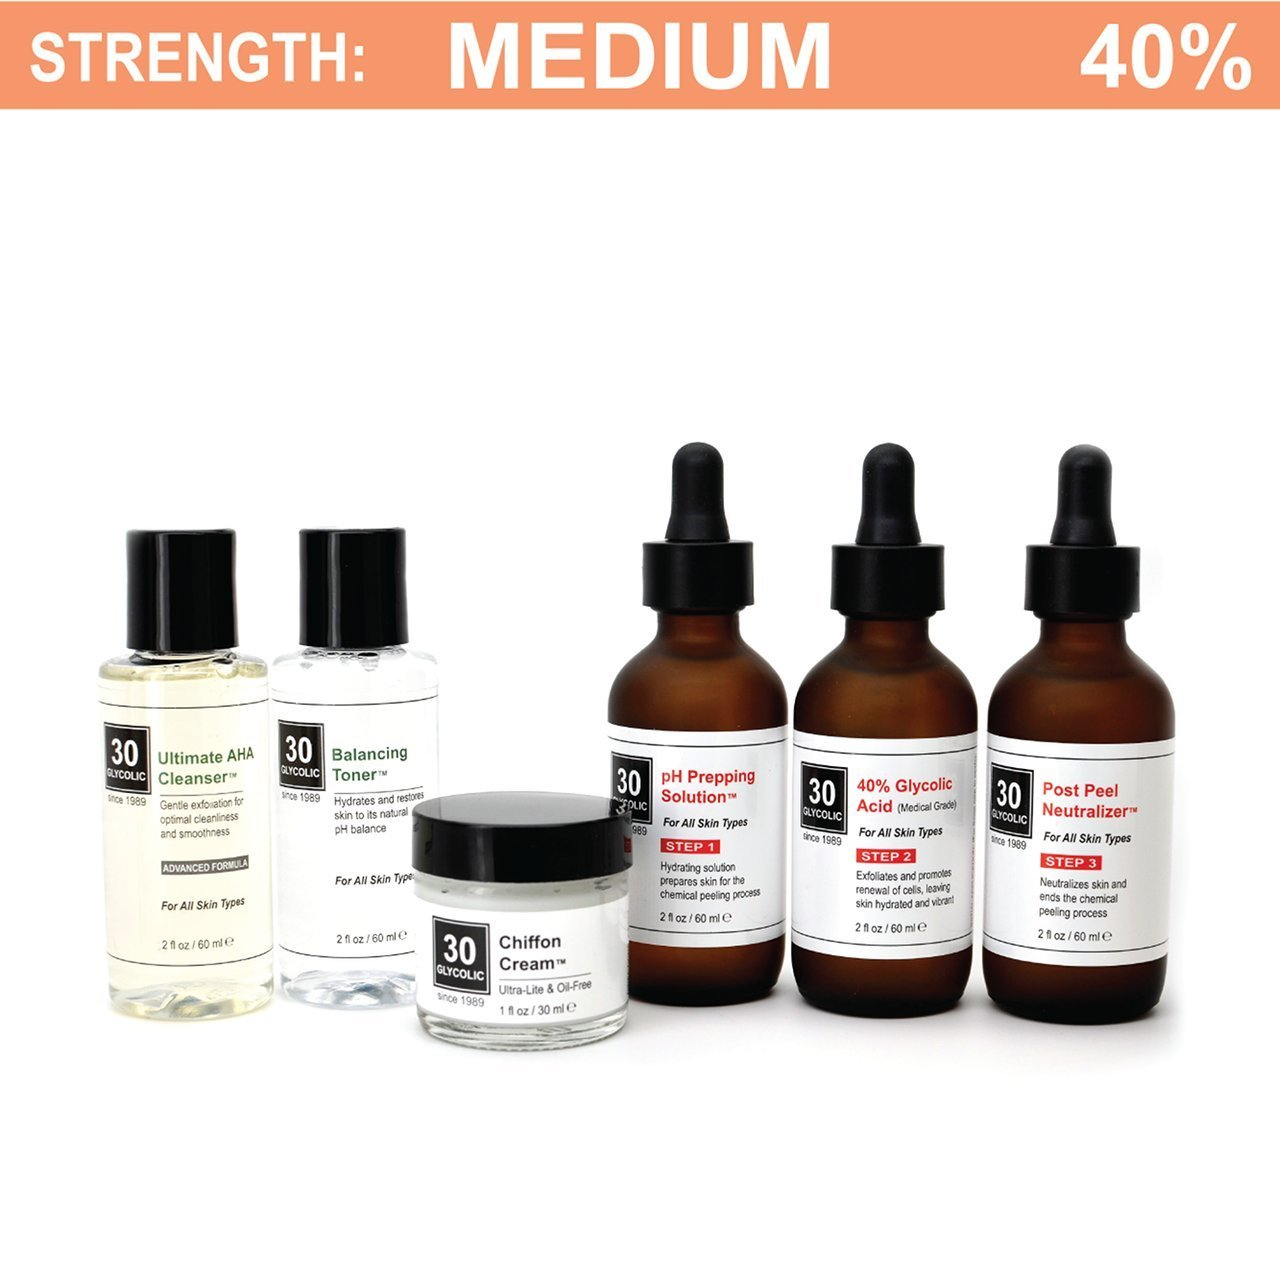 40% Glycolic Peel System for Acne/Oily/Combo Skin - FREE $45 Cleanser/Toner/Cream INCLUDED